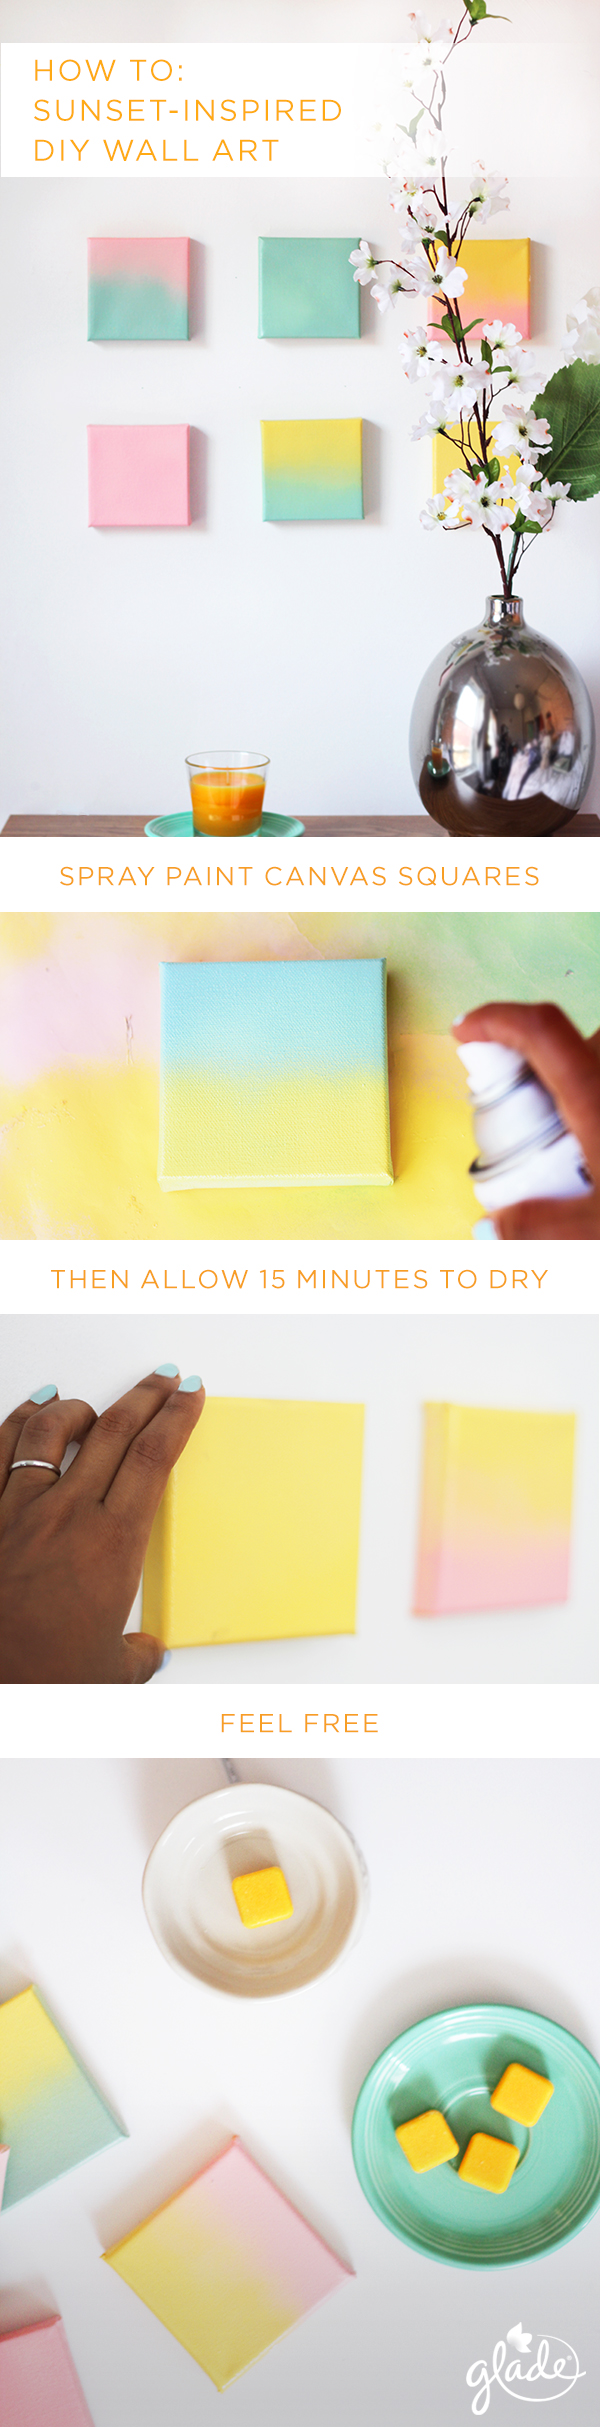 Take the wow factor of a summer sunset and bring it straight to your living room with this DIY wall art décor. All you need is 15 minutes, four canvas squares, pastel spray paint and the scent of a Glade Soak It In Summer Swim candle and wax melts from our new Escape to the Lake summer collection to get you in the mood to seize summer's days.